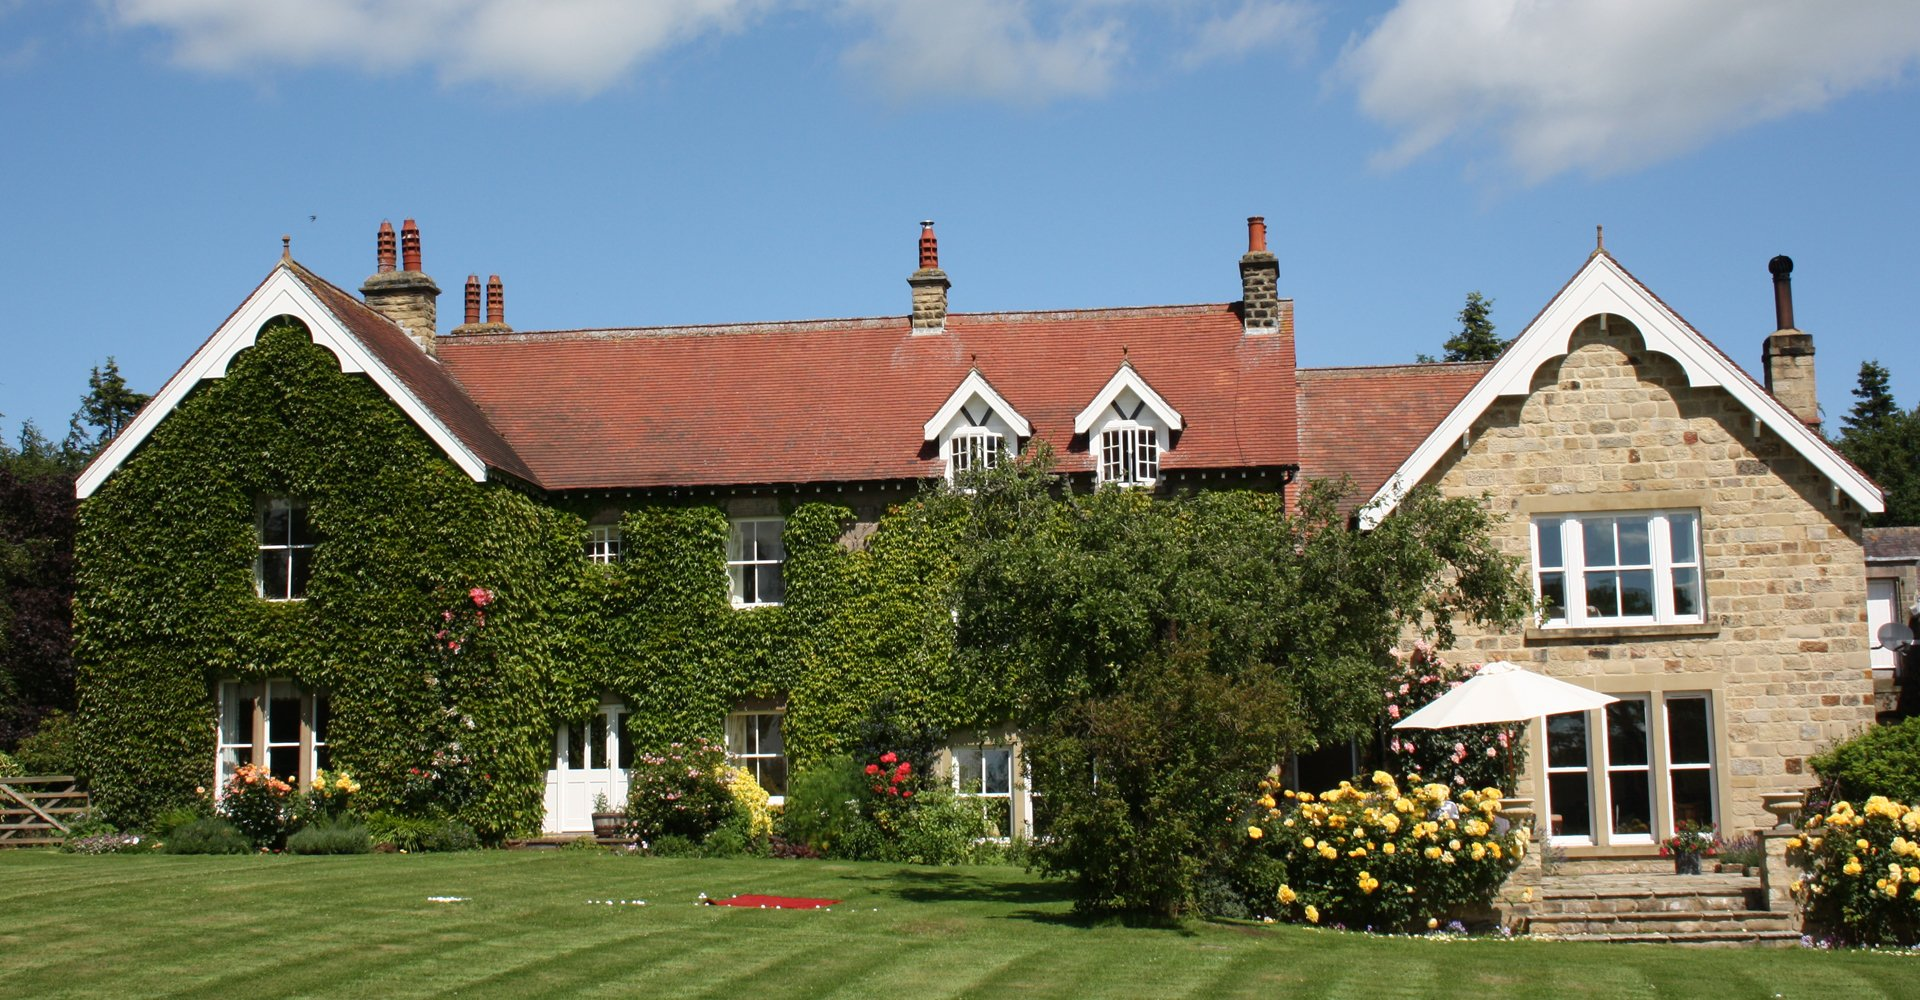 A large ivy-covered house with red roof and extension of pale brick, with a large lawn lined with trees and flowers